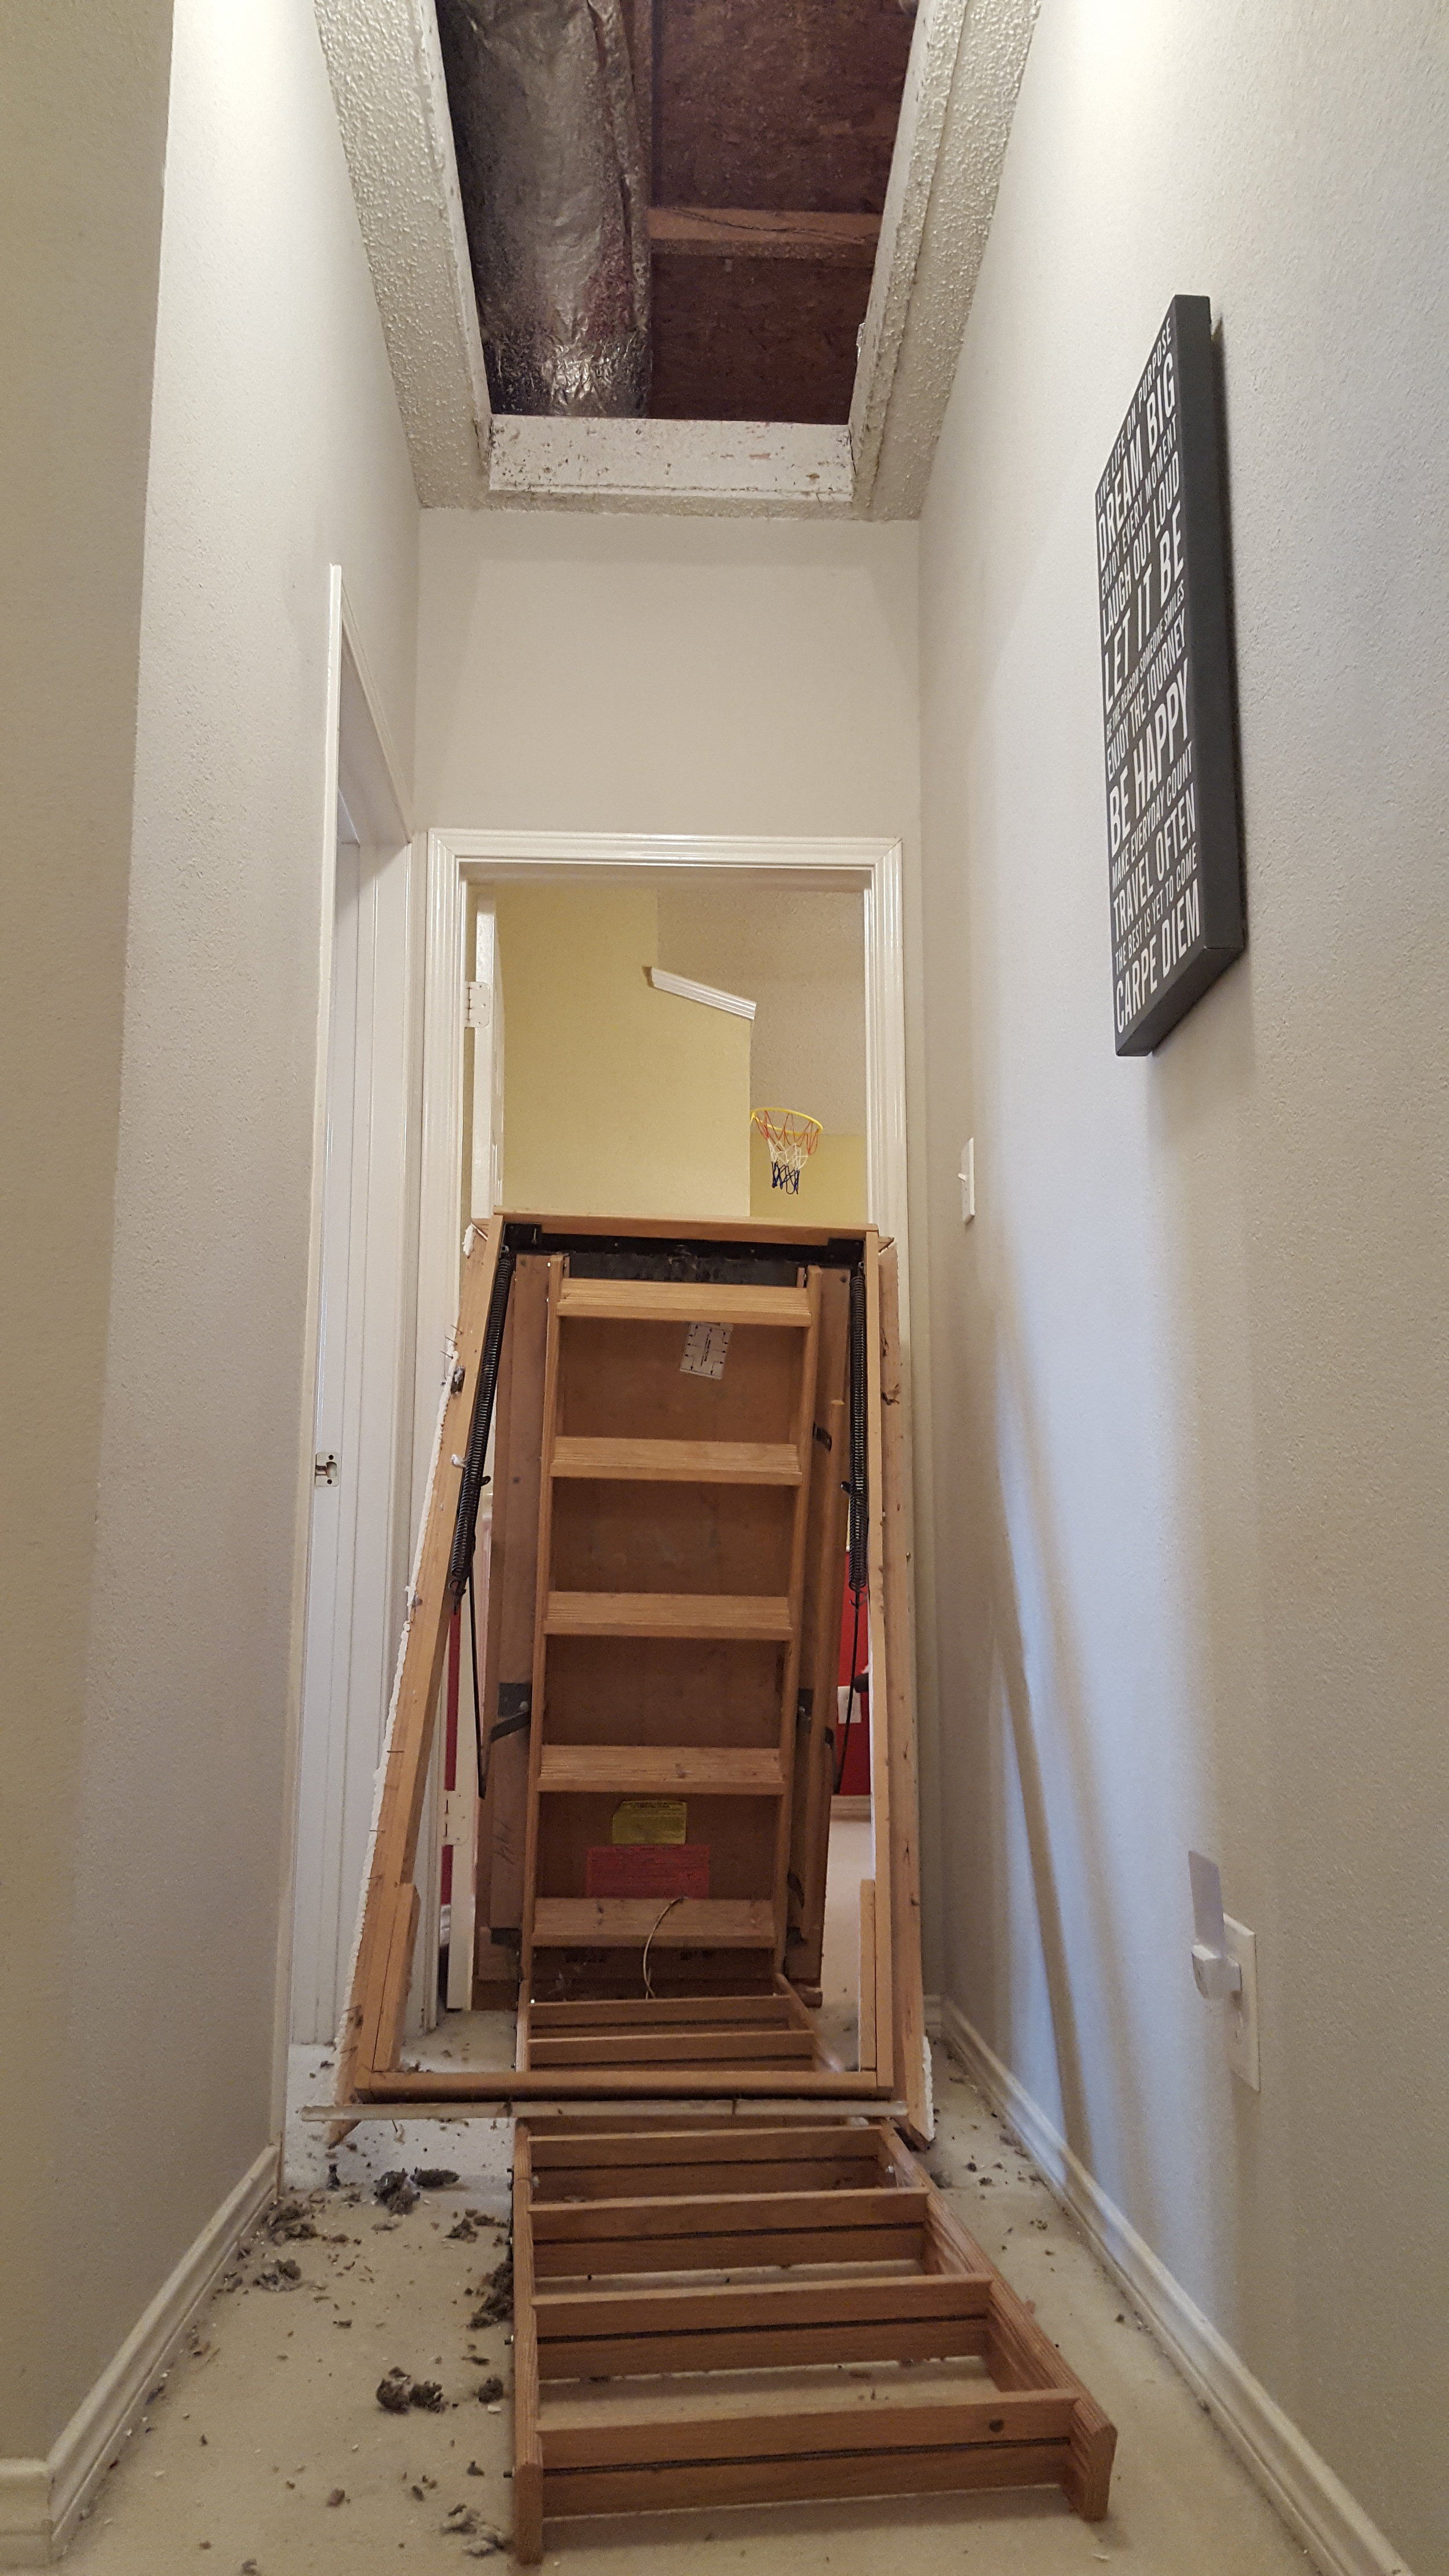 Attic access pull down staircase collapsed during inspection: here is a great example to why it is important to hire a qualified contractor for all jobs.    ( potential fatal injuries to my clients were avoided )